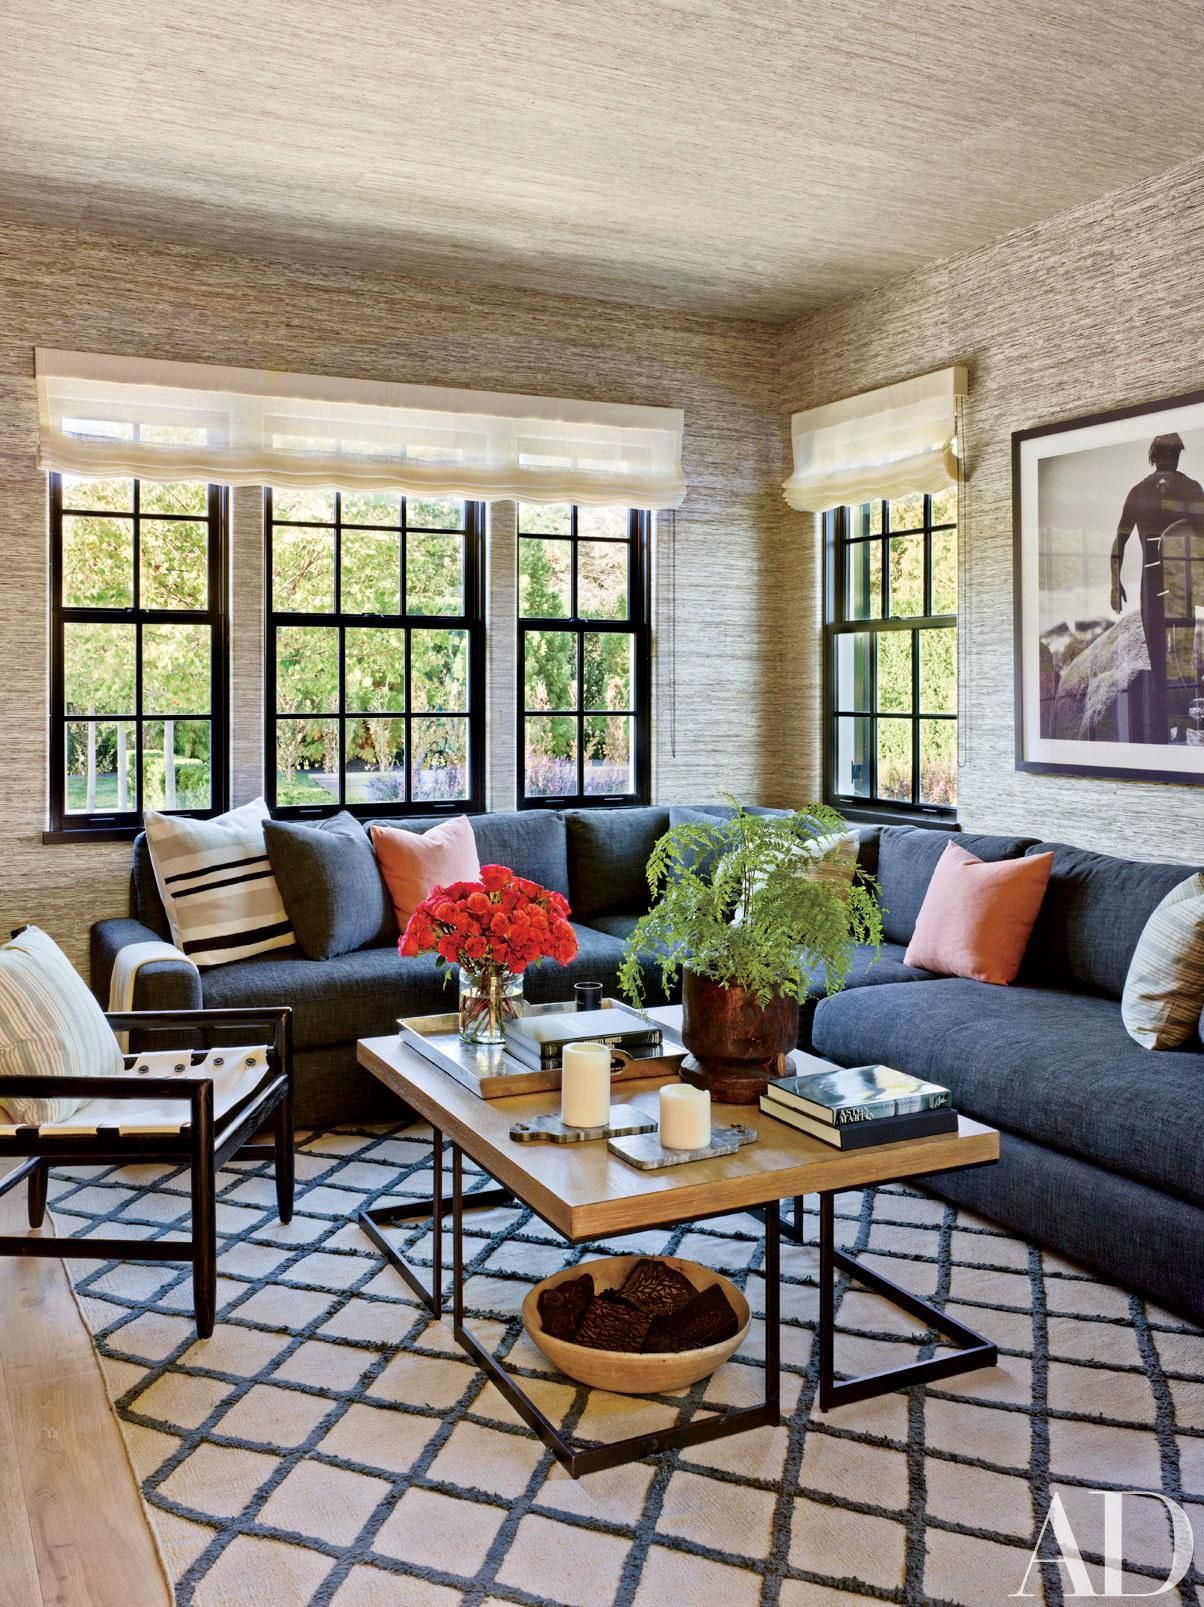 21 Sectional Sofas That Make The Room Family Room Design Living